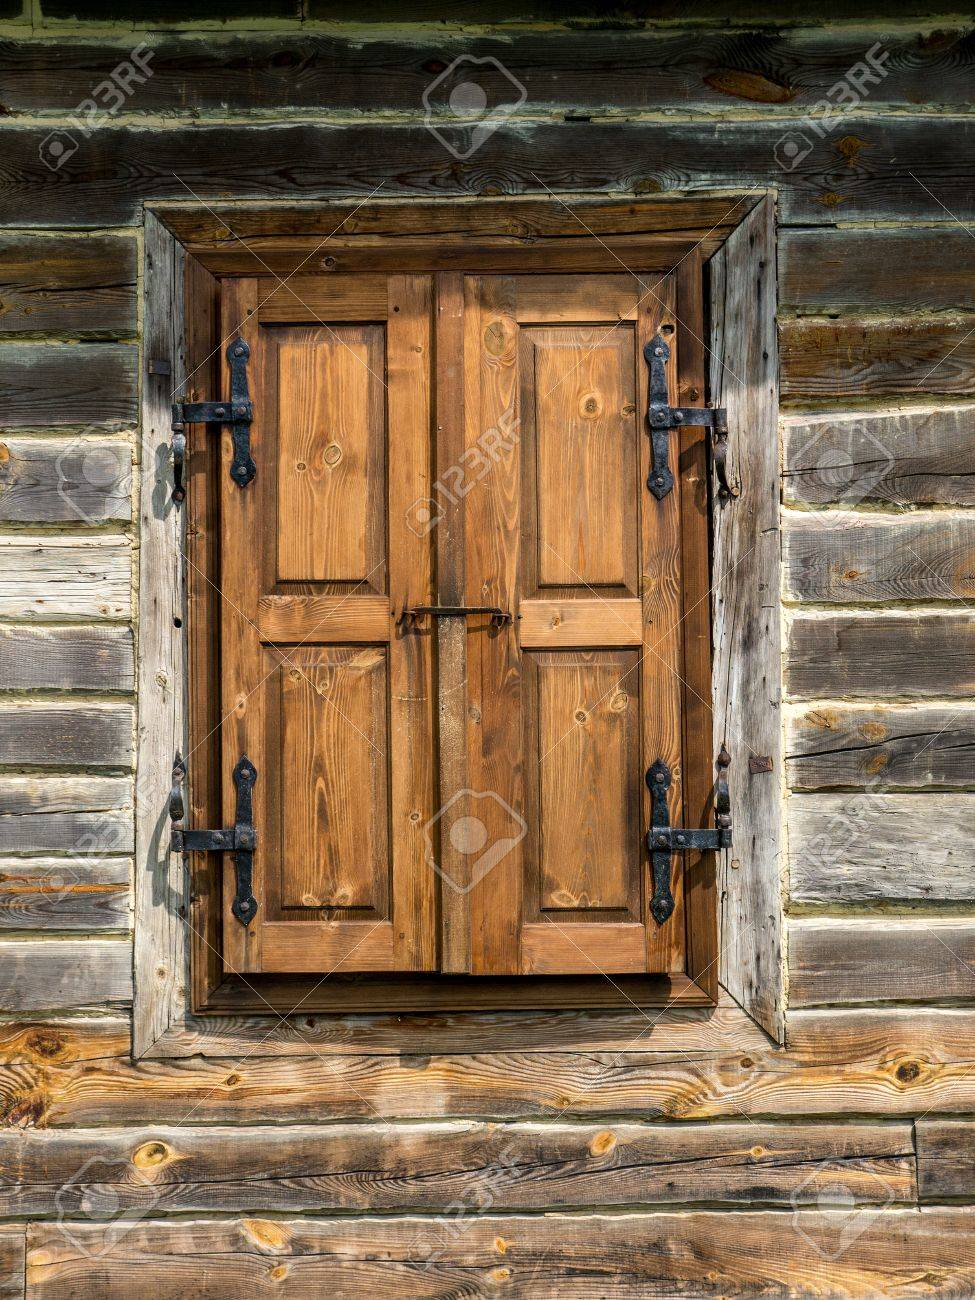 Old Wooden Rustic Window Shutters Stock Photo Picture And Royalty Free Image Image 30850107